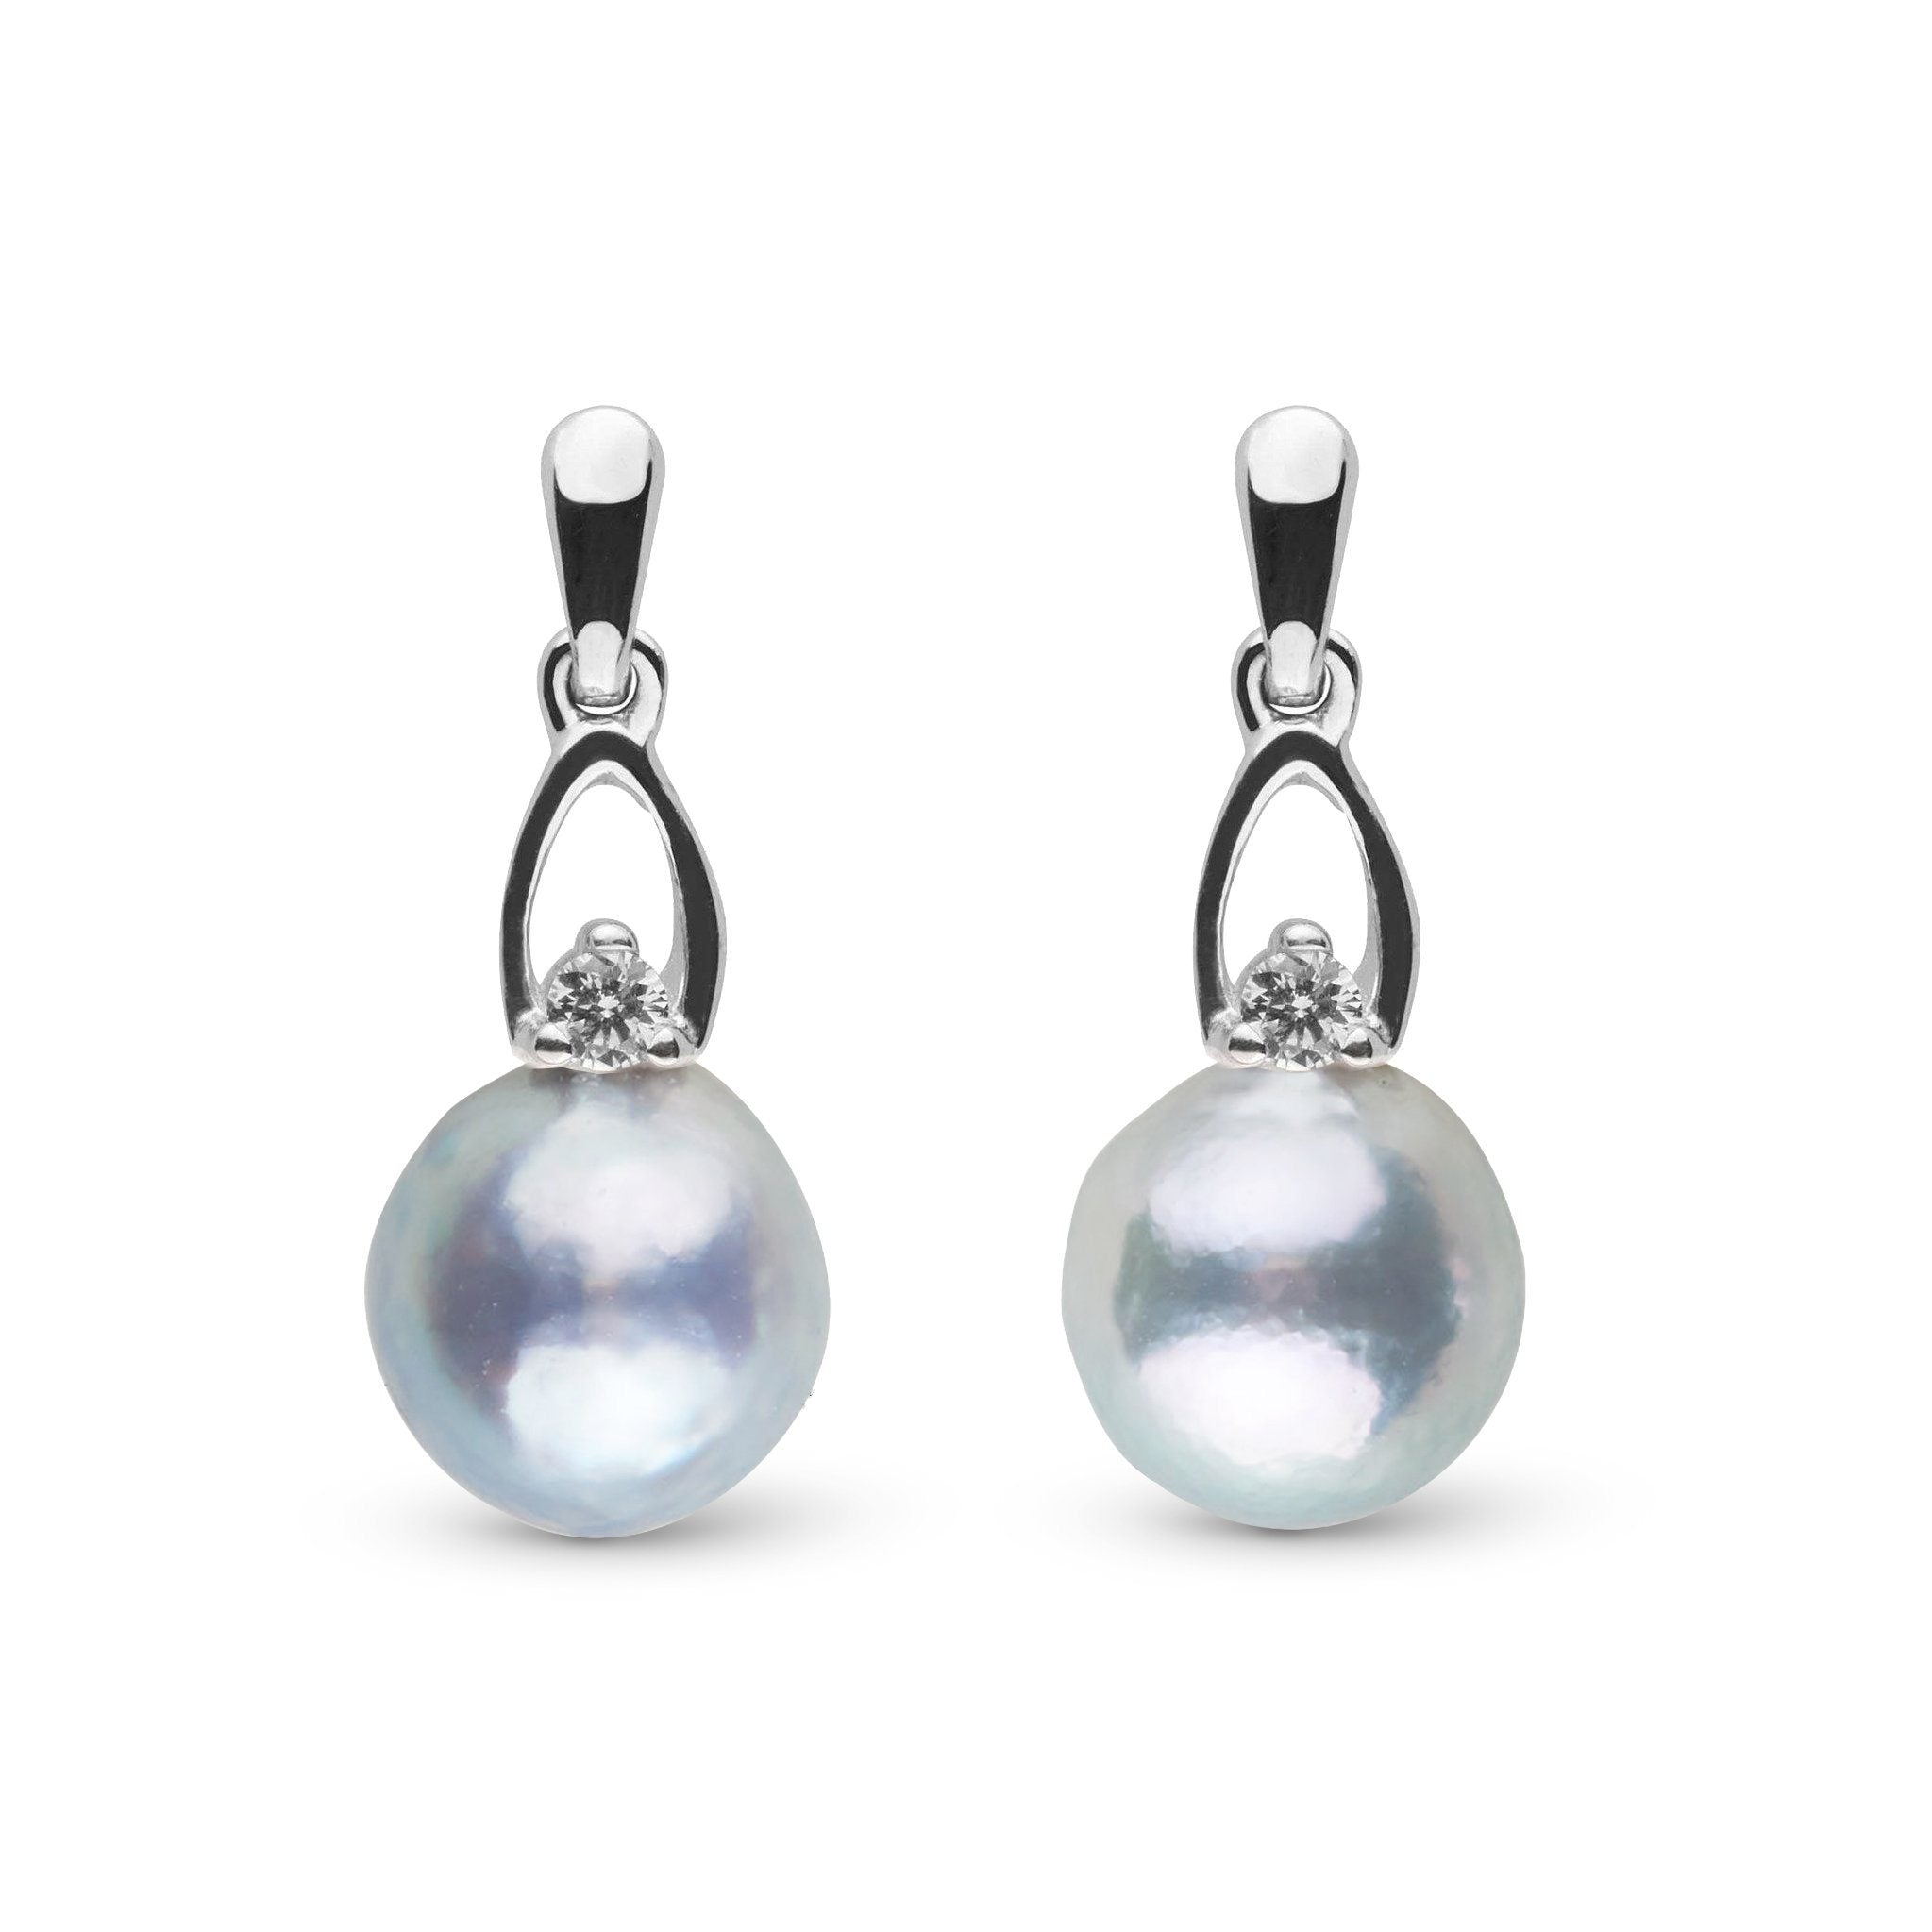 Juliet Collection 7.0-8.0 mm Silver-Blue Akoya Pearl and Diamond Earrings